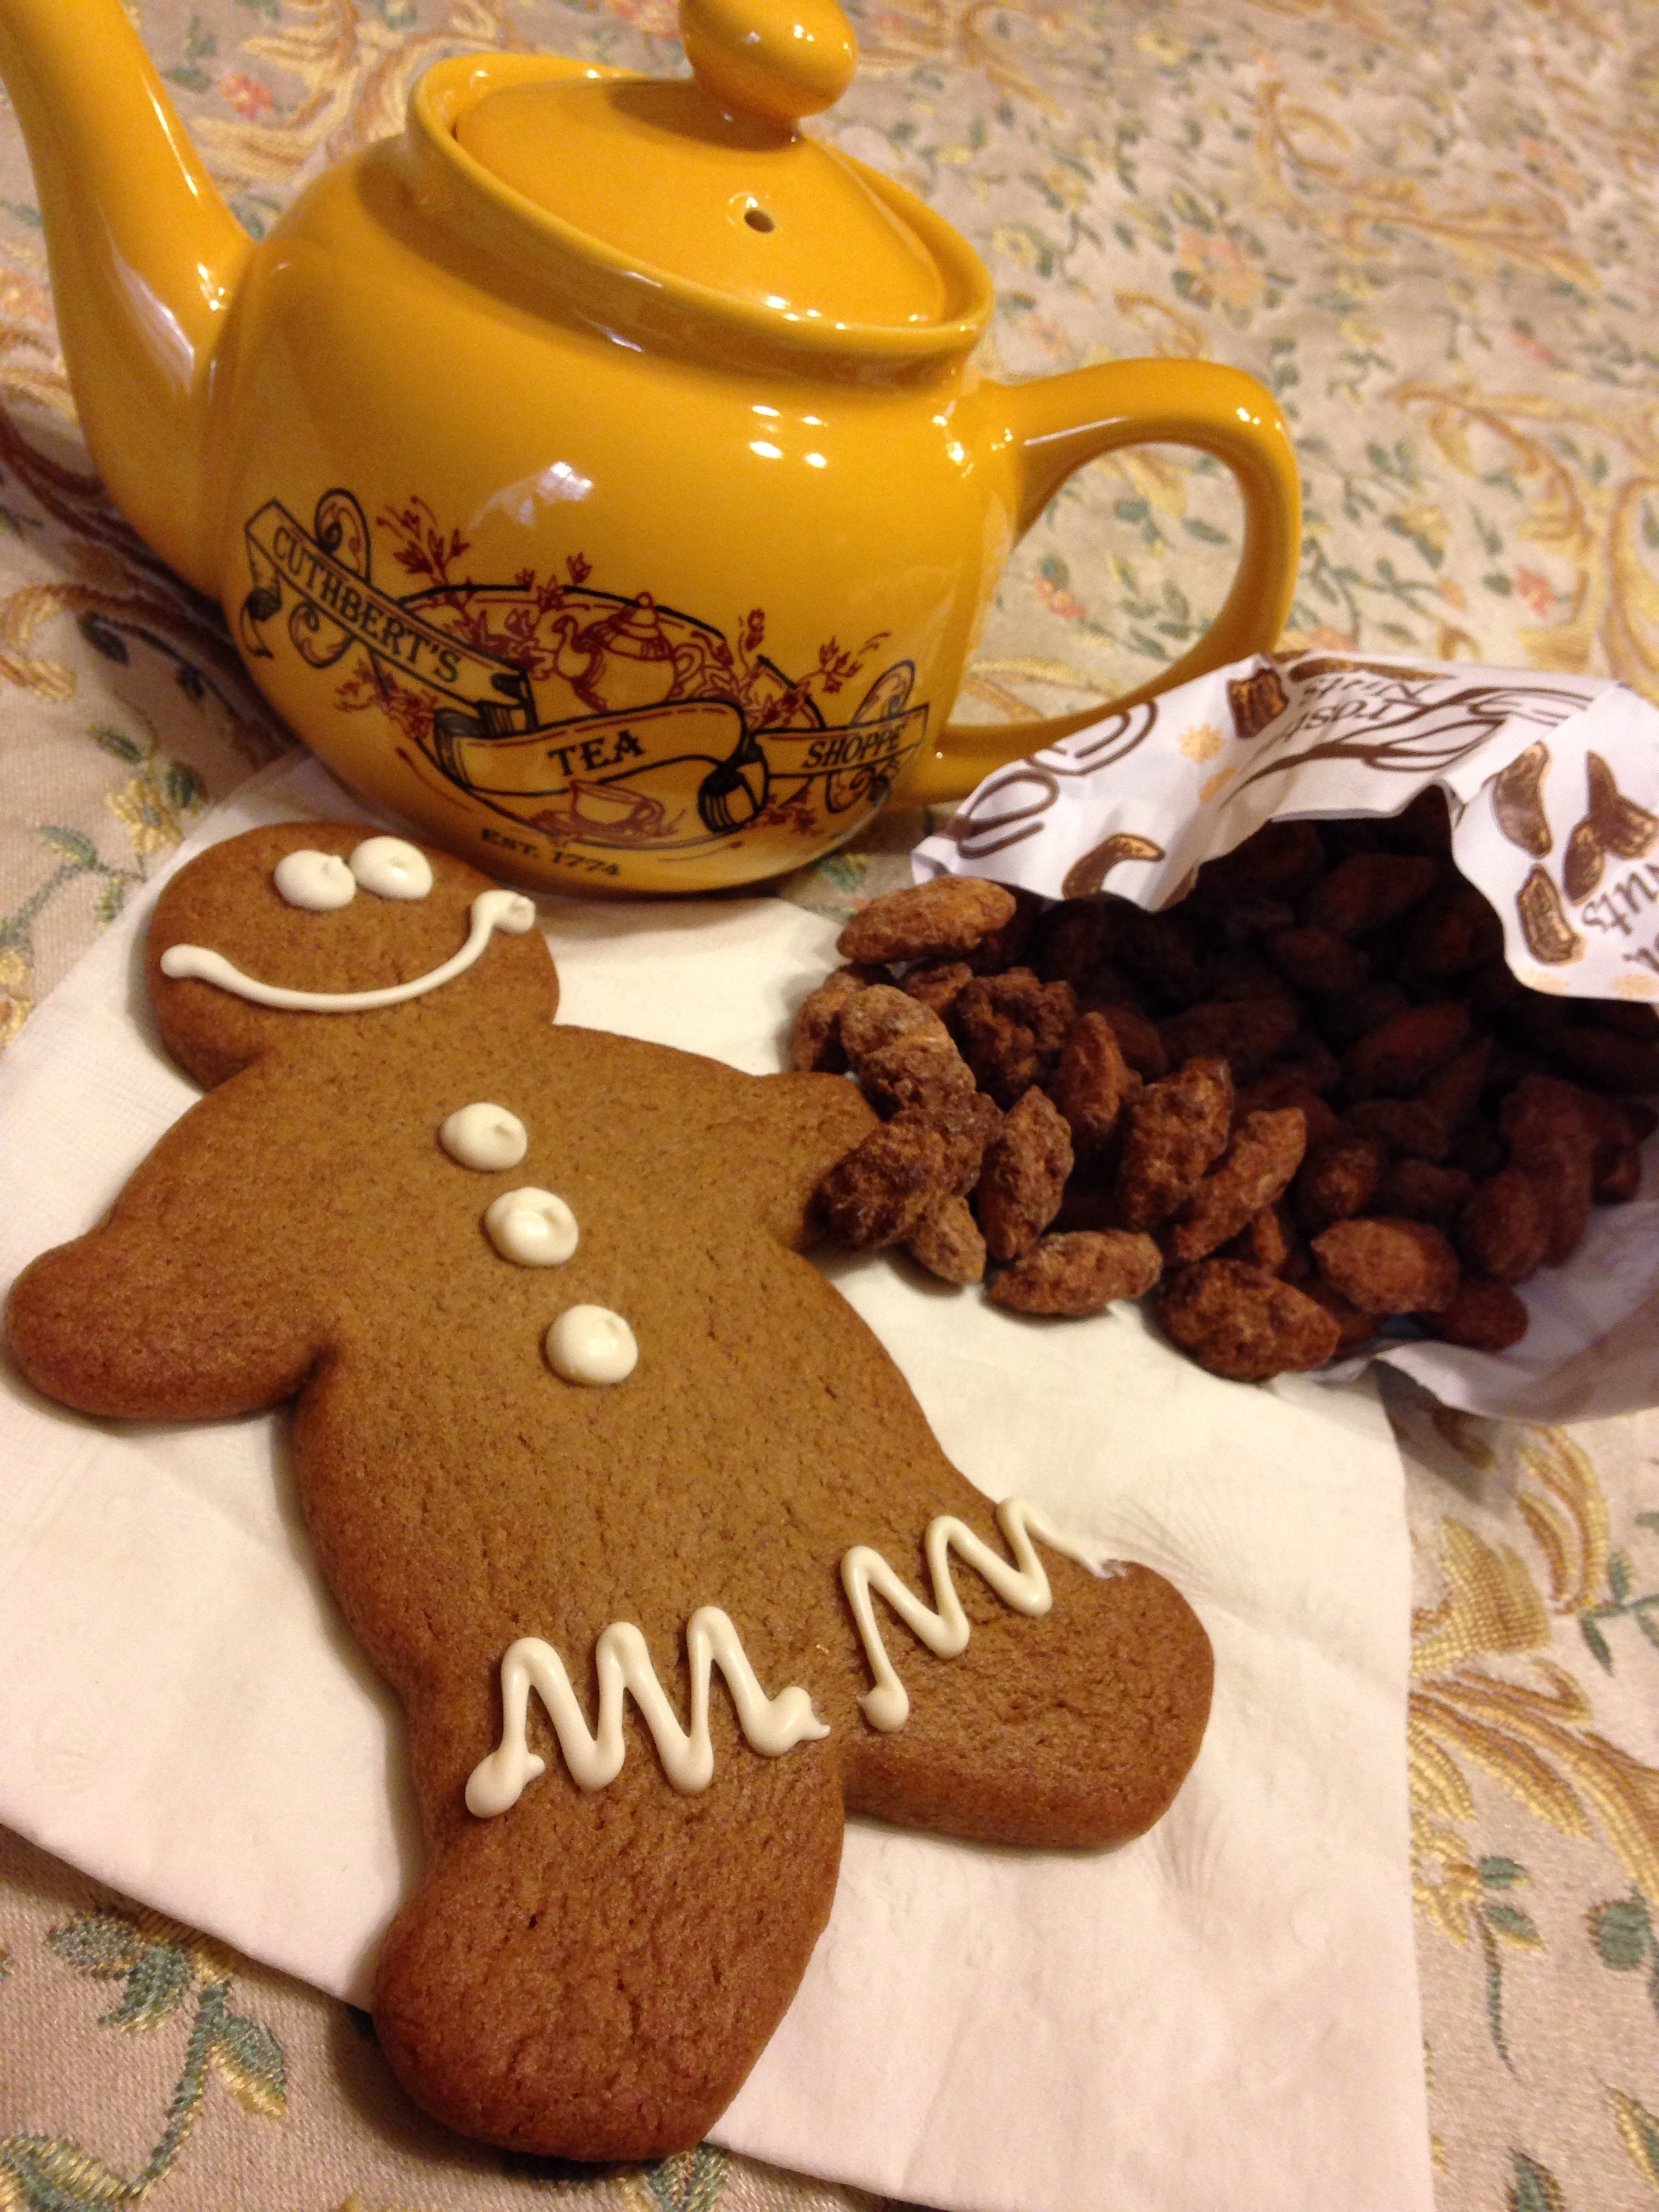 teapot, gingerbread man cookie, cinnamon almond crunch